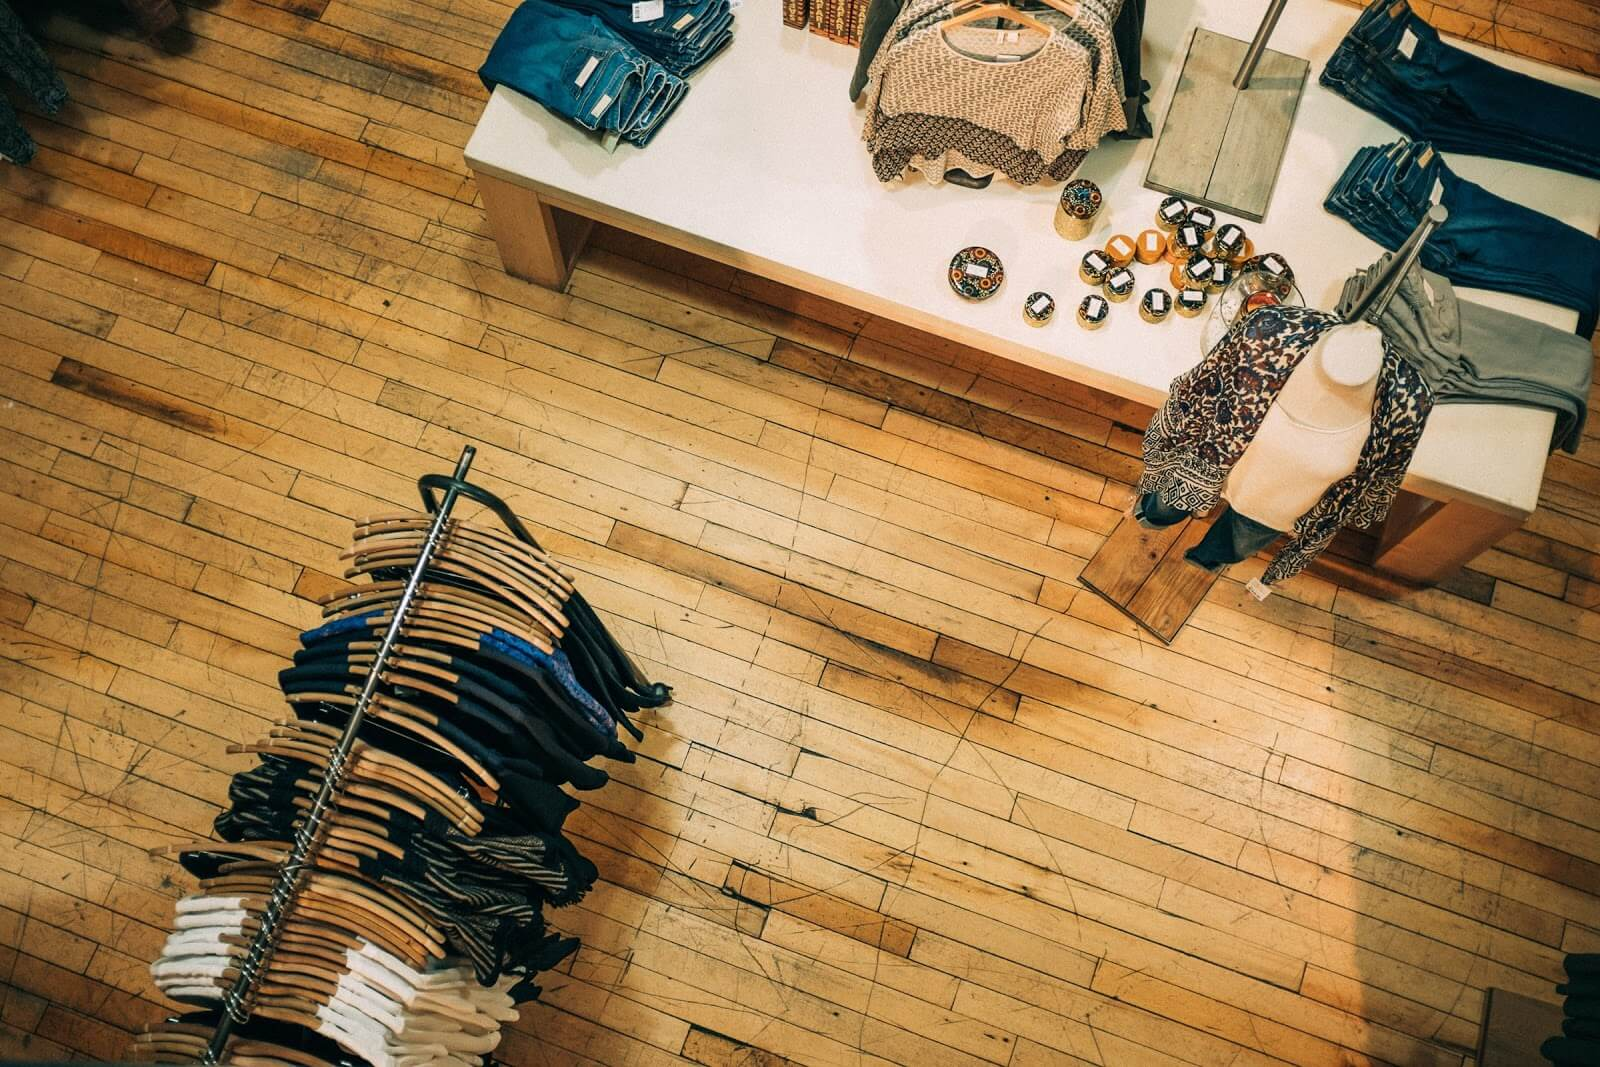 BOPIS in Retail: How to Create an In-Store Pickup Experience Rivaling the Big Brands